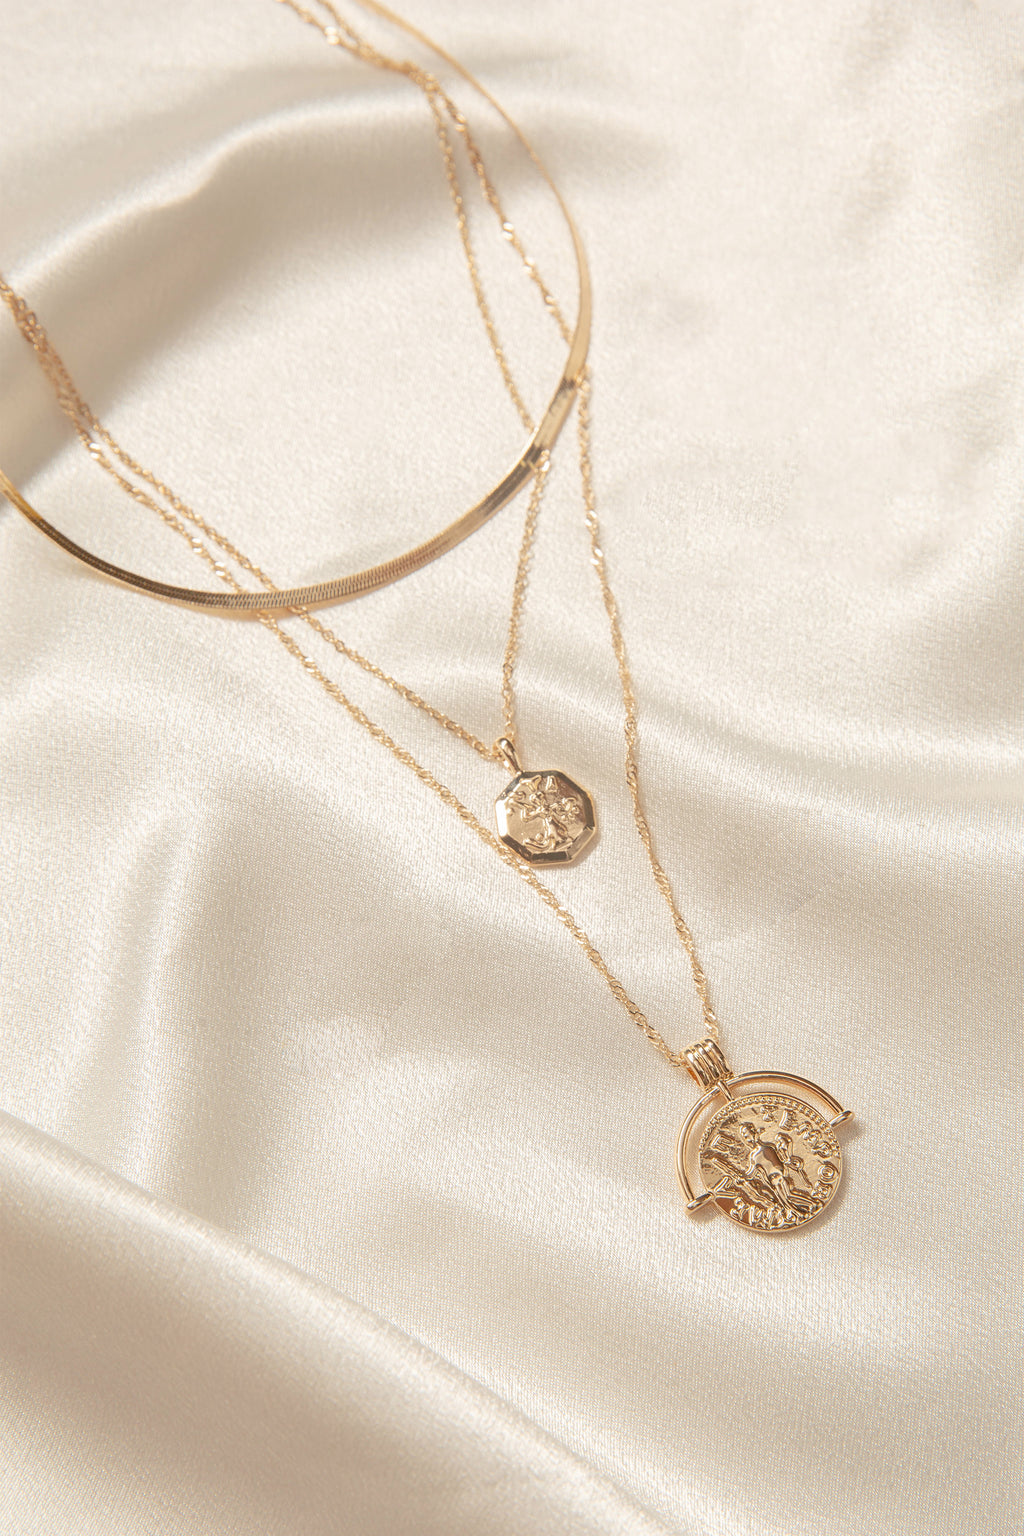 Medallion Chain Necklace